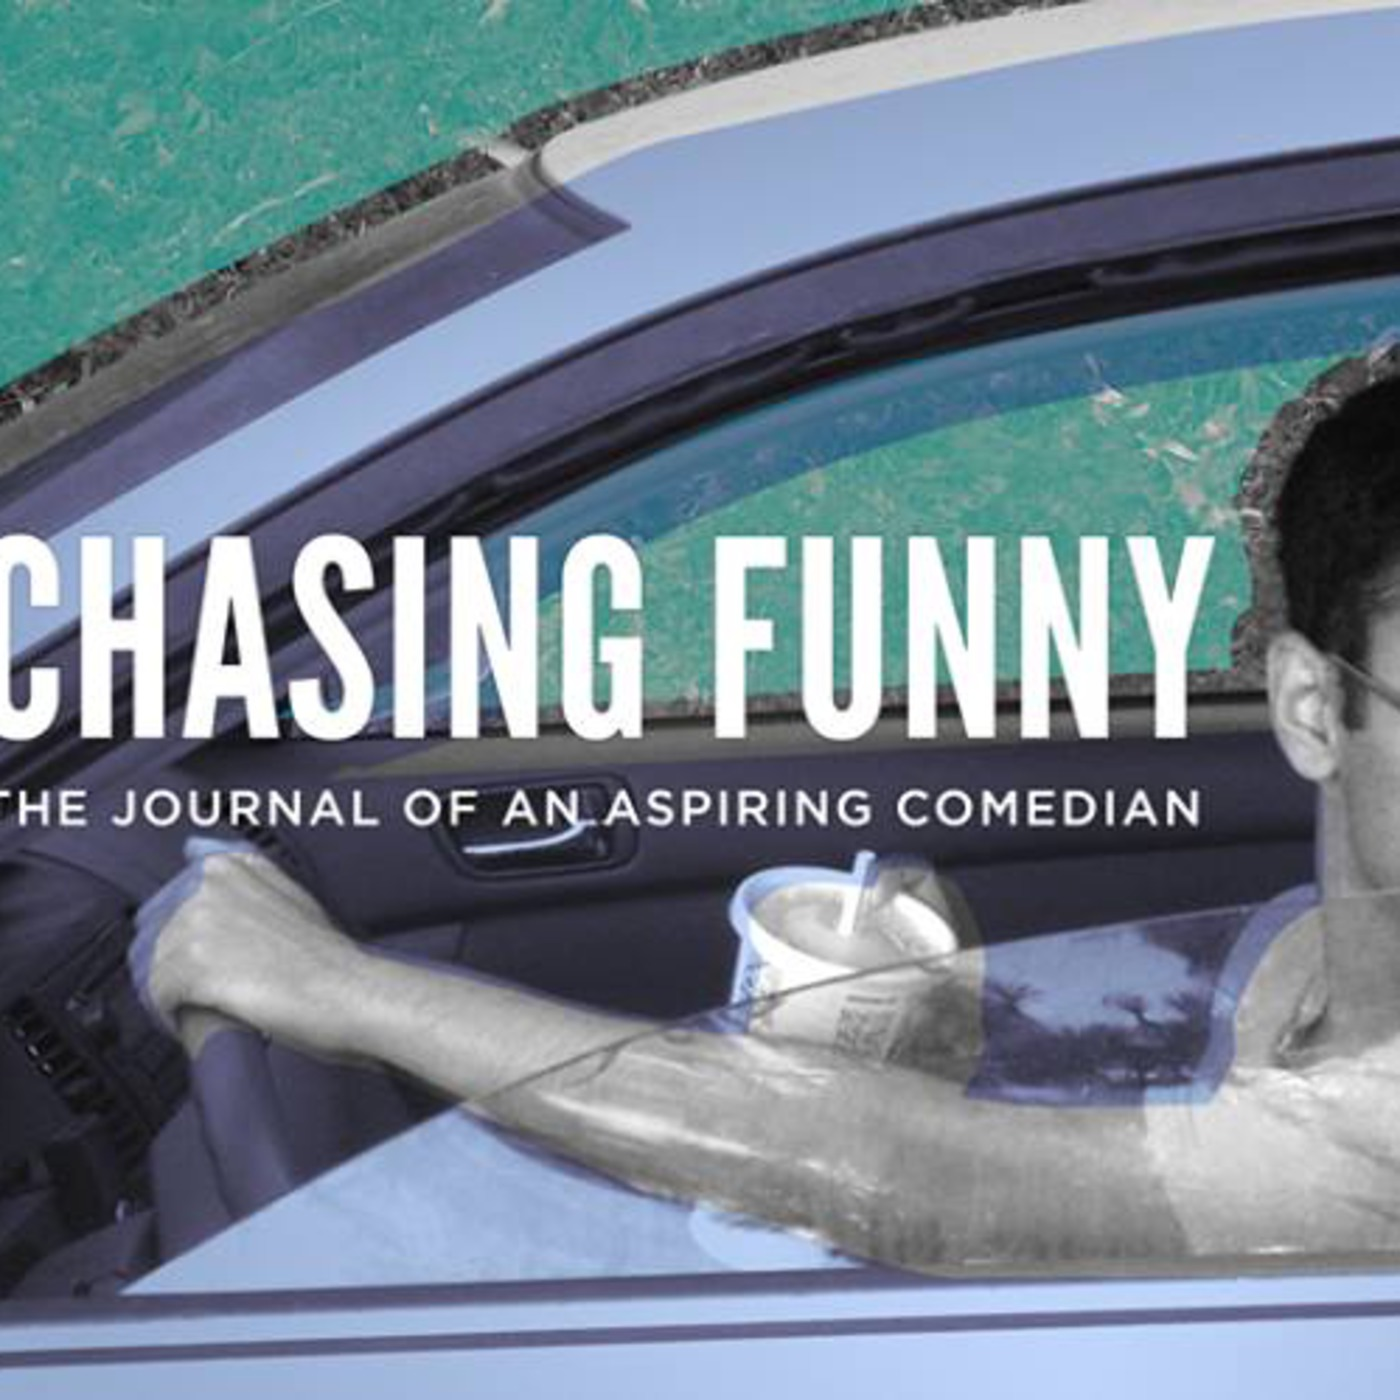 Chasing Funny